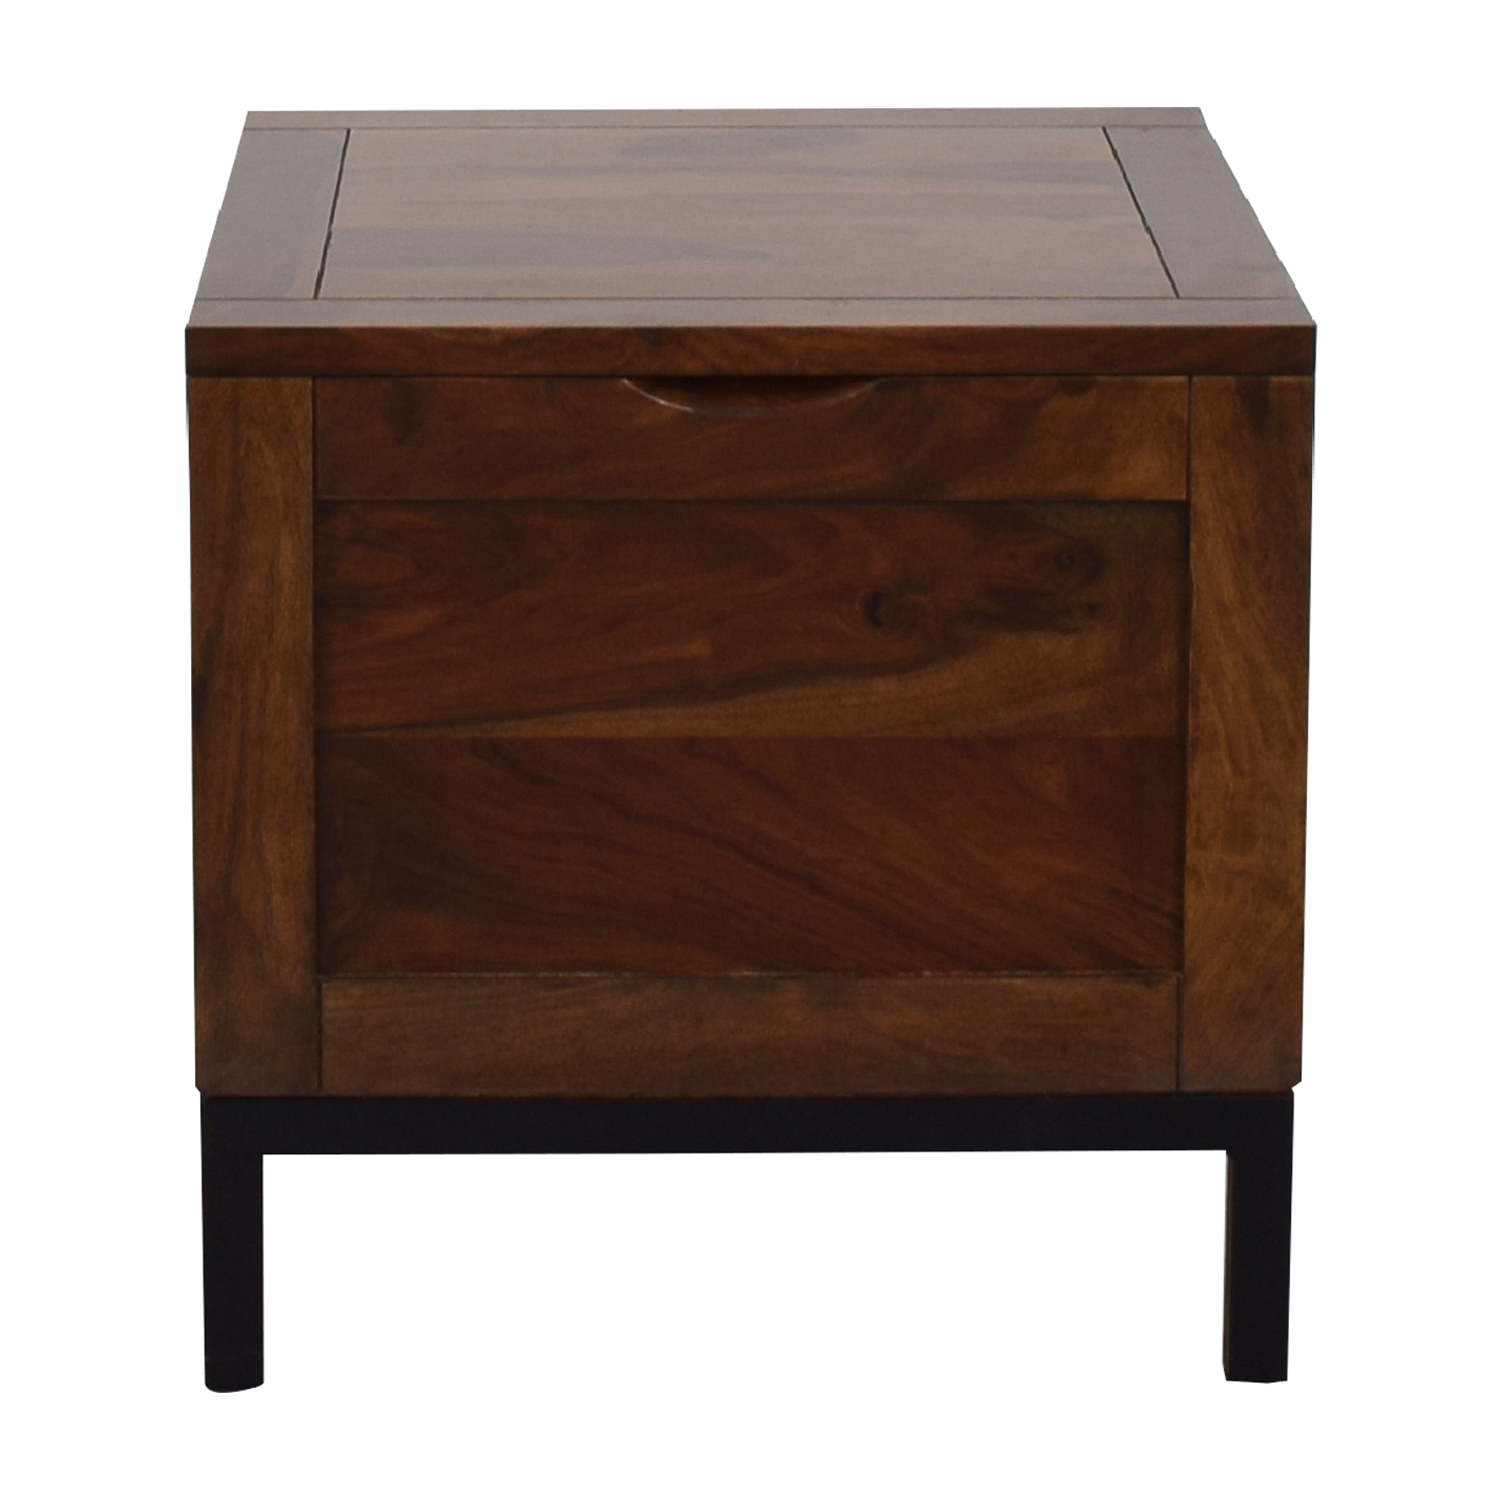 buy Crate & Barrel Crate & Barrel Tucker Side Trunk Table online